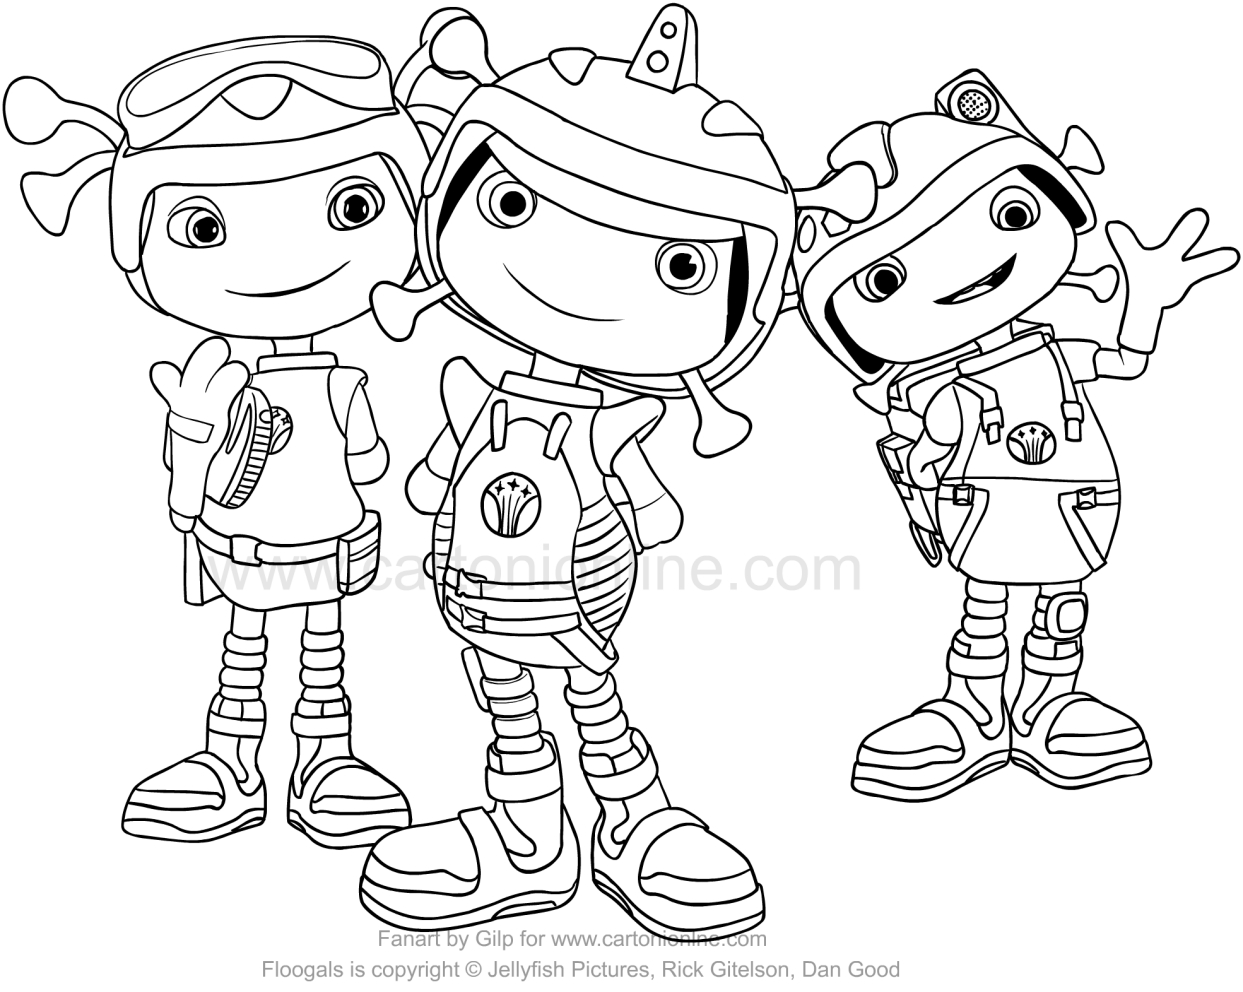 Mickey Mouse coloring pages  60 free Disney printables